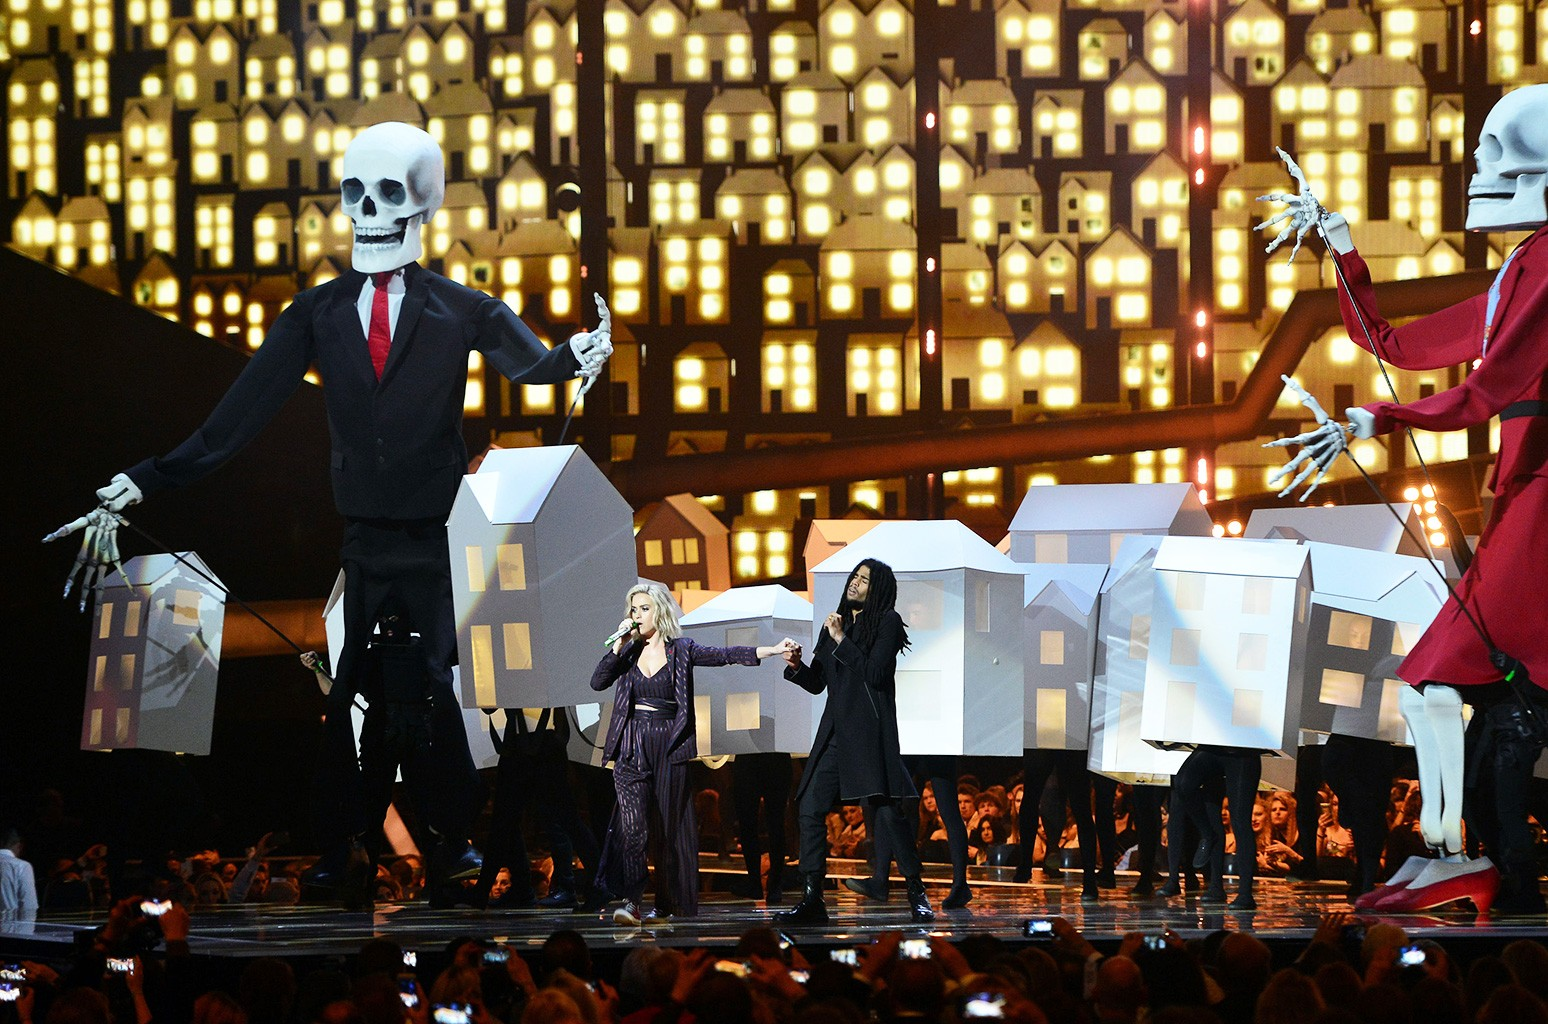 Katy Perry performing on stage at the Brit Awards at the O2 Arena, London.